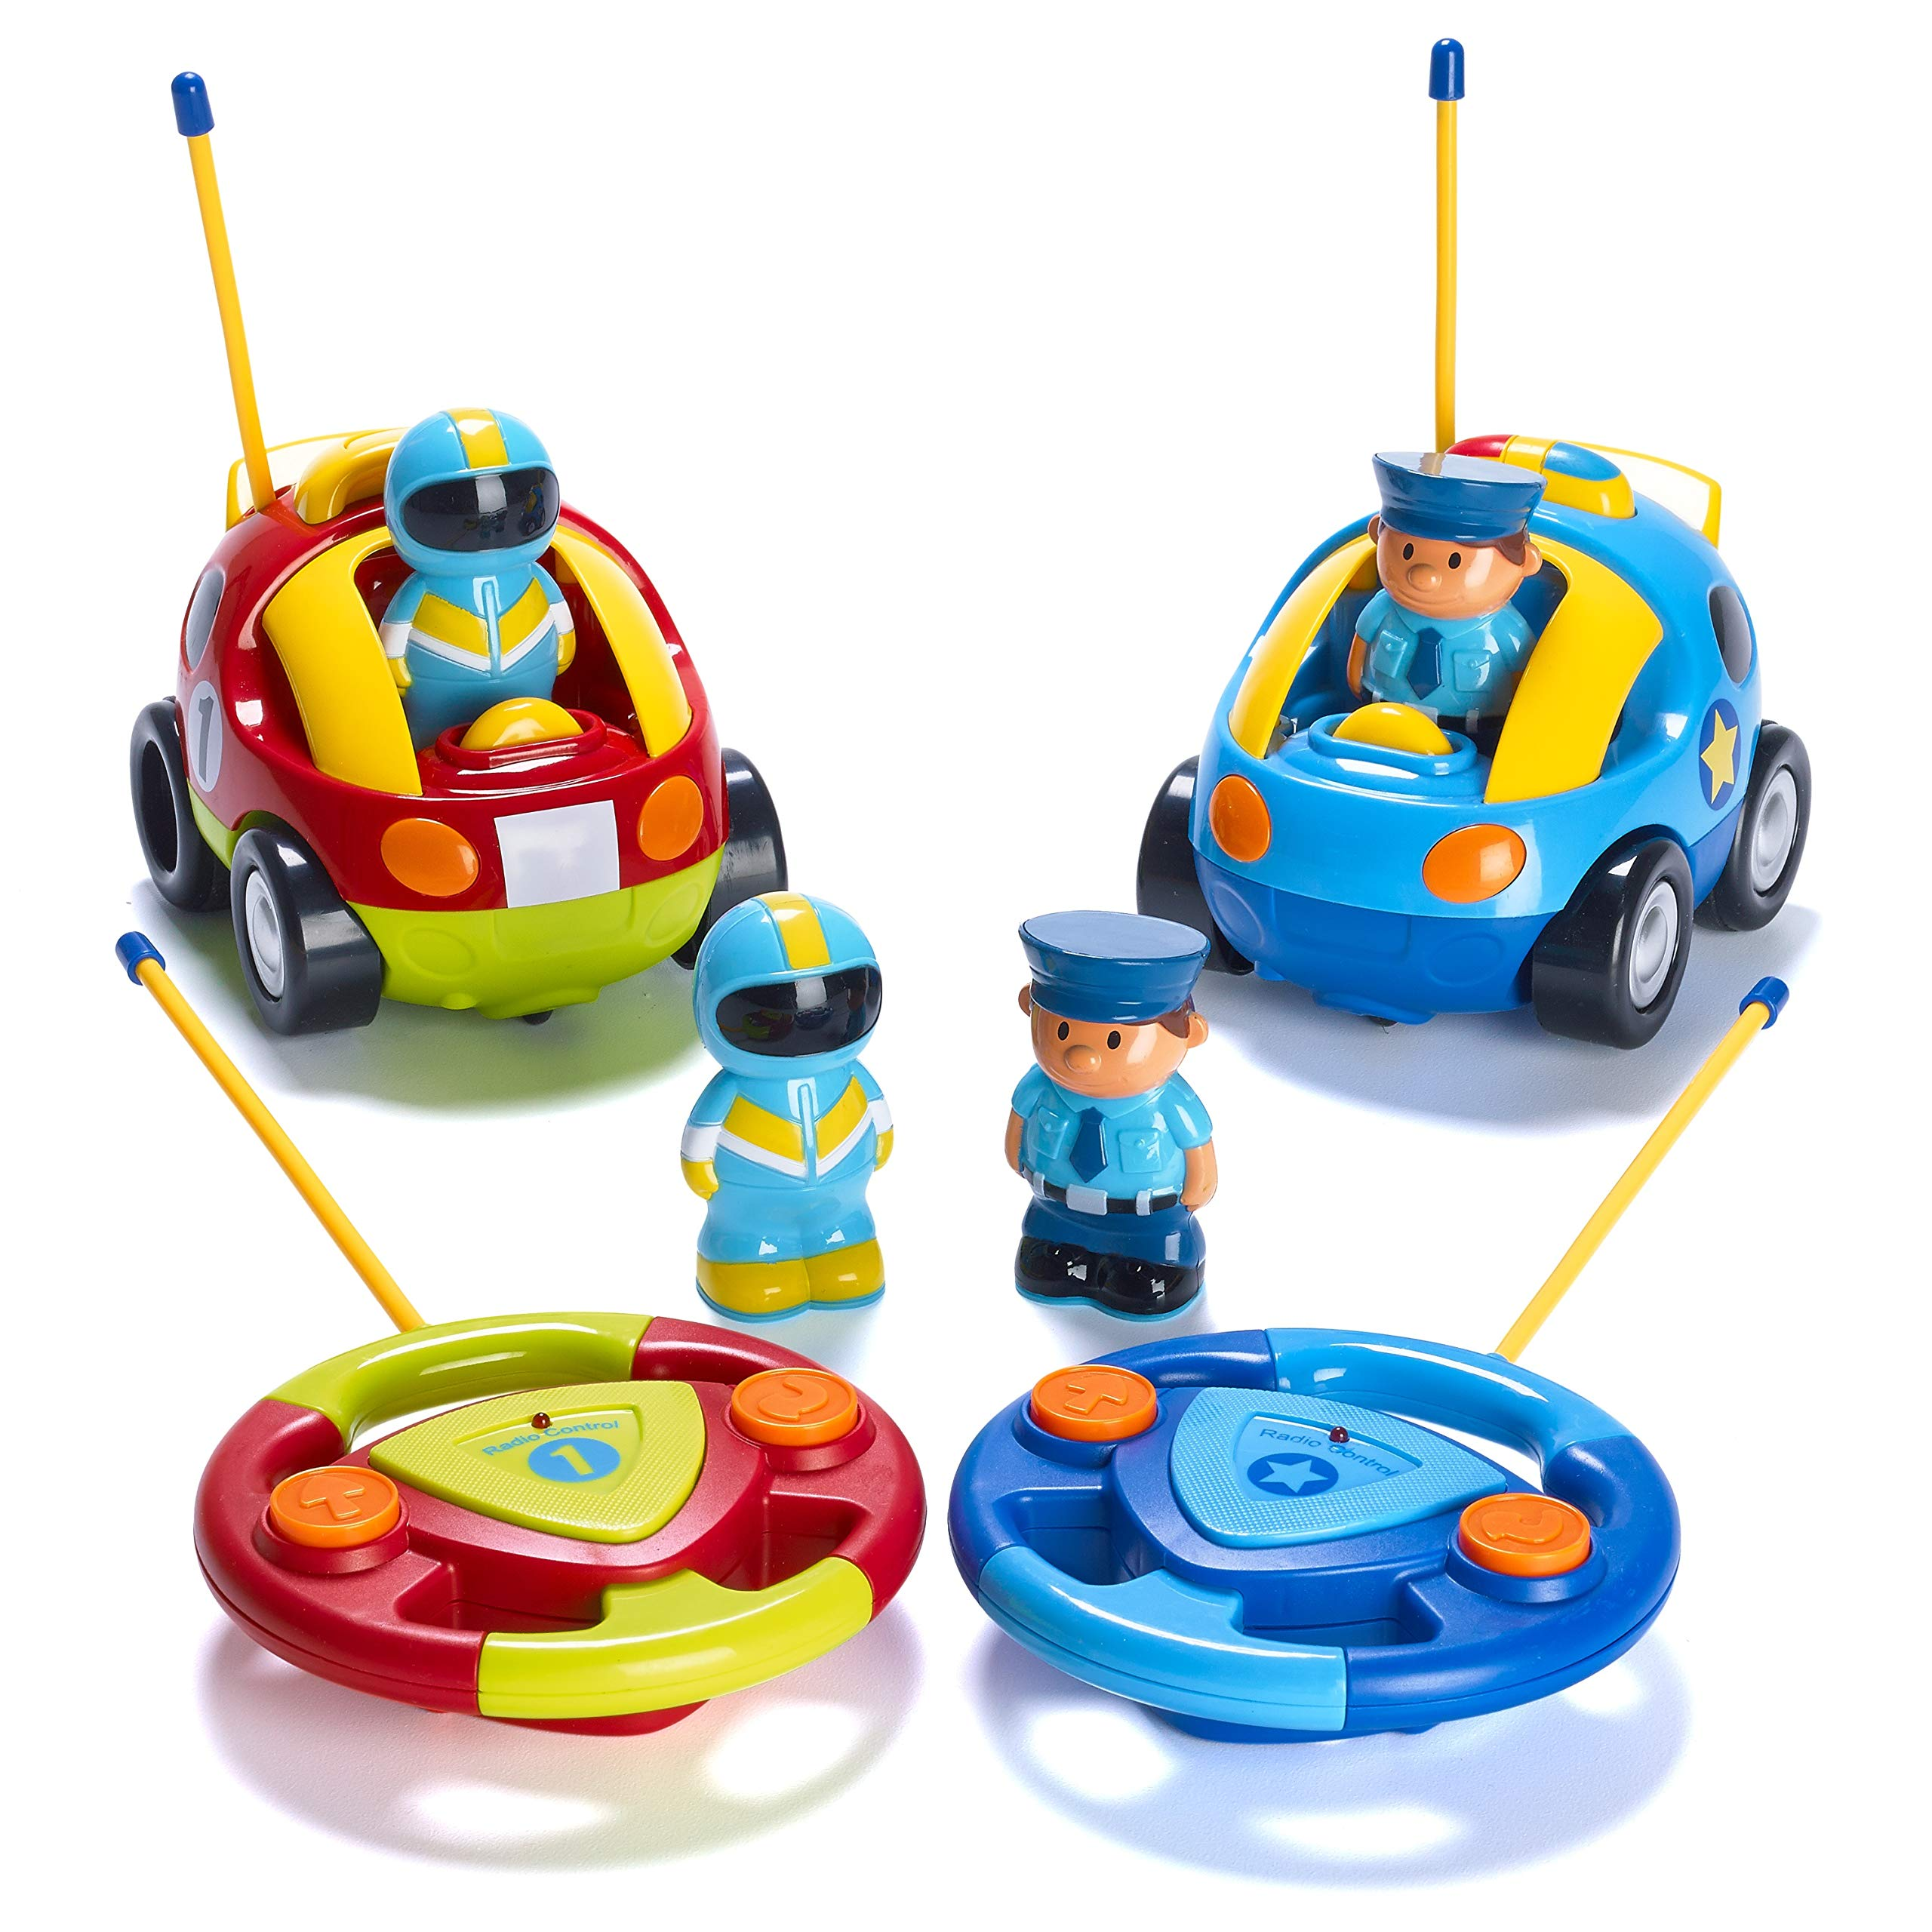 Prextex Pack of 2 Cartoon R/C Police Car and Race Car Radio Control Toys for Kids- Each with Different Frequencies So Both Can Race Together - wiihuu